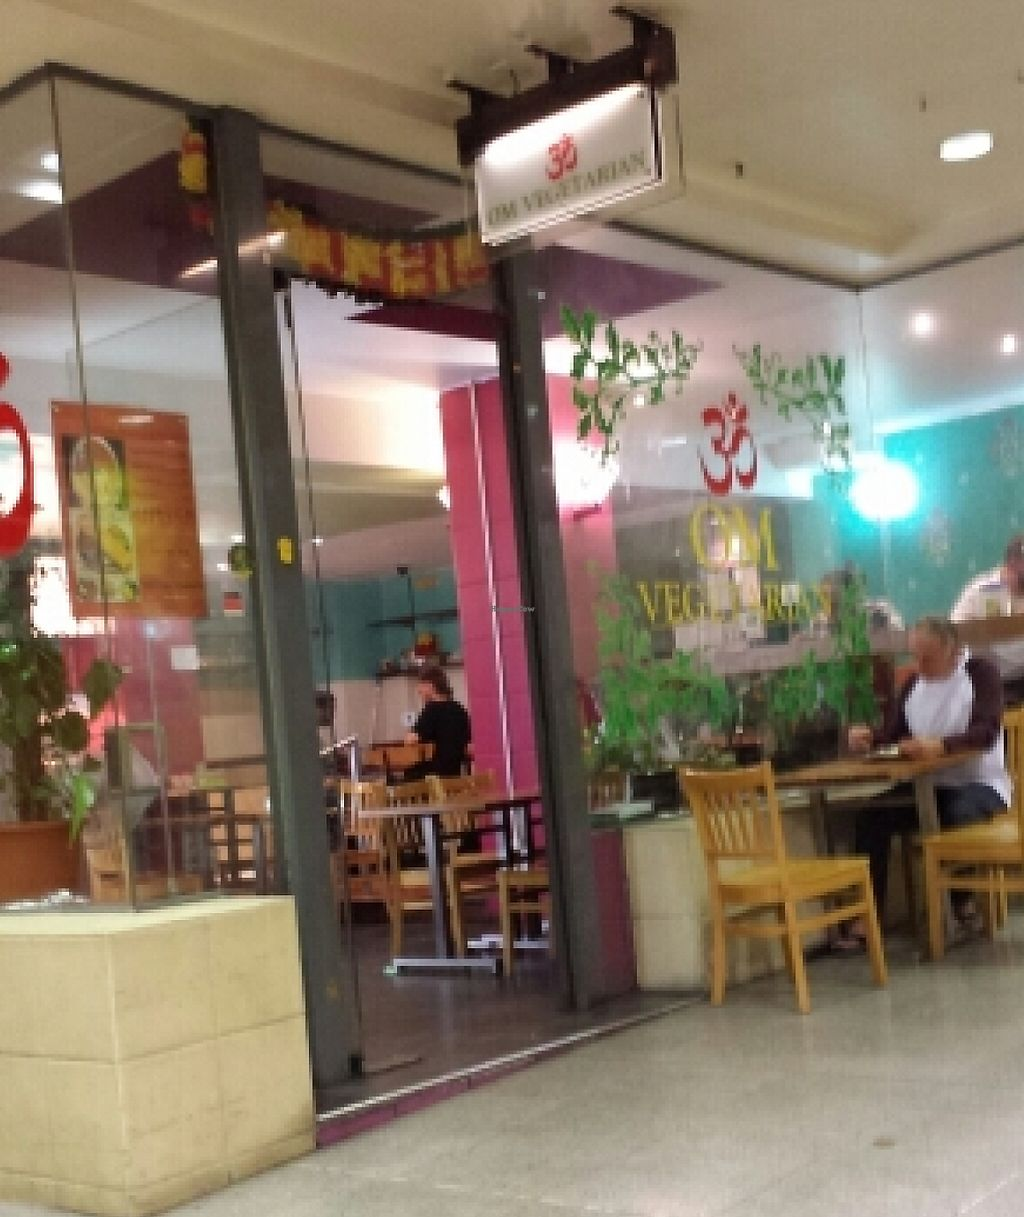 """Photo of Om Vegetarian - Capitol Arcade  by <a href=""""/members/profile/Aloo"""">Aloo</a> <br/>Photo from sitting at one of the tables in the arcade.  <br/> November 11, 2015  - <a href='/contact/abuse/image/50591/260067'>Report</a>"""